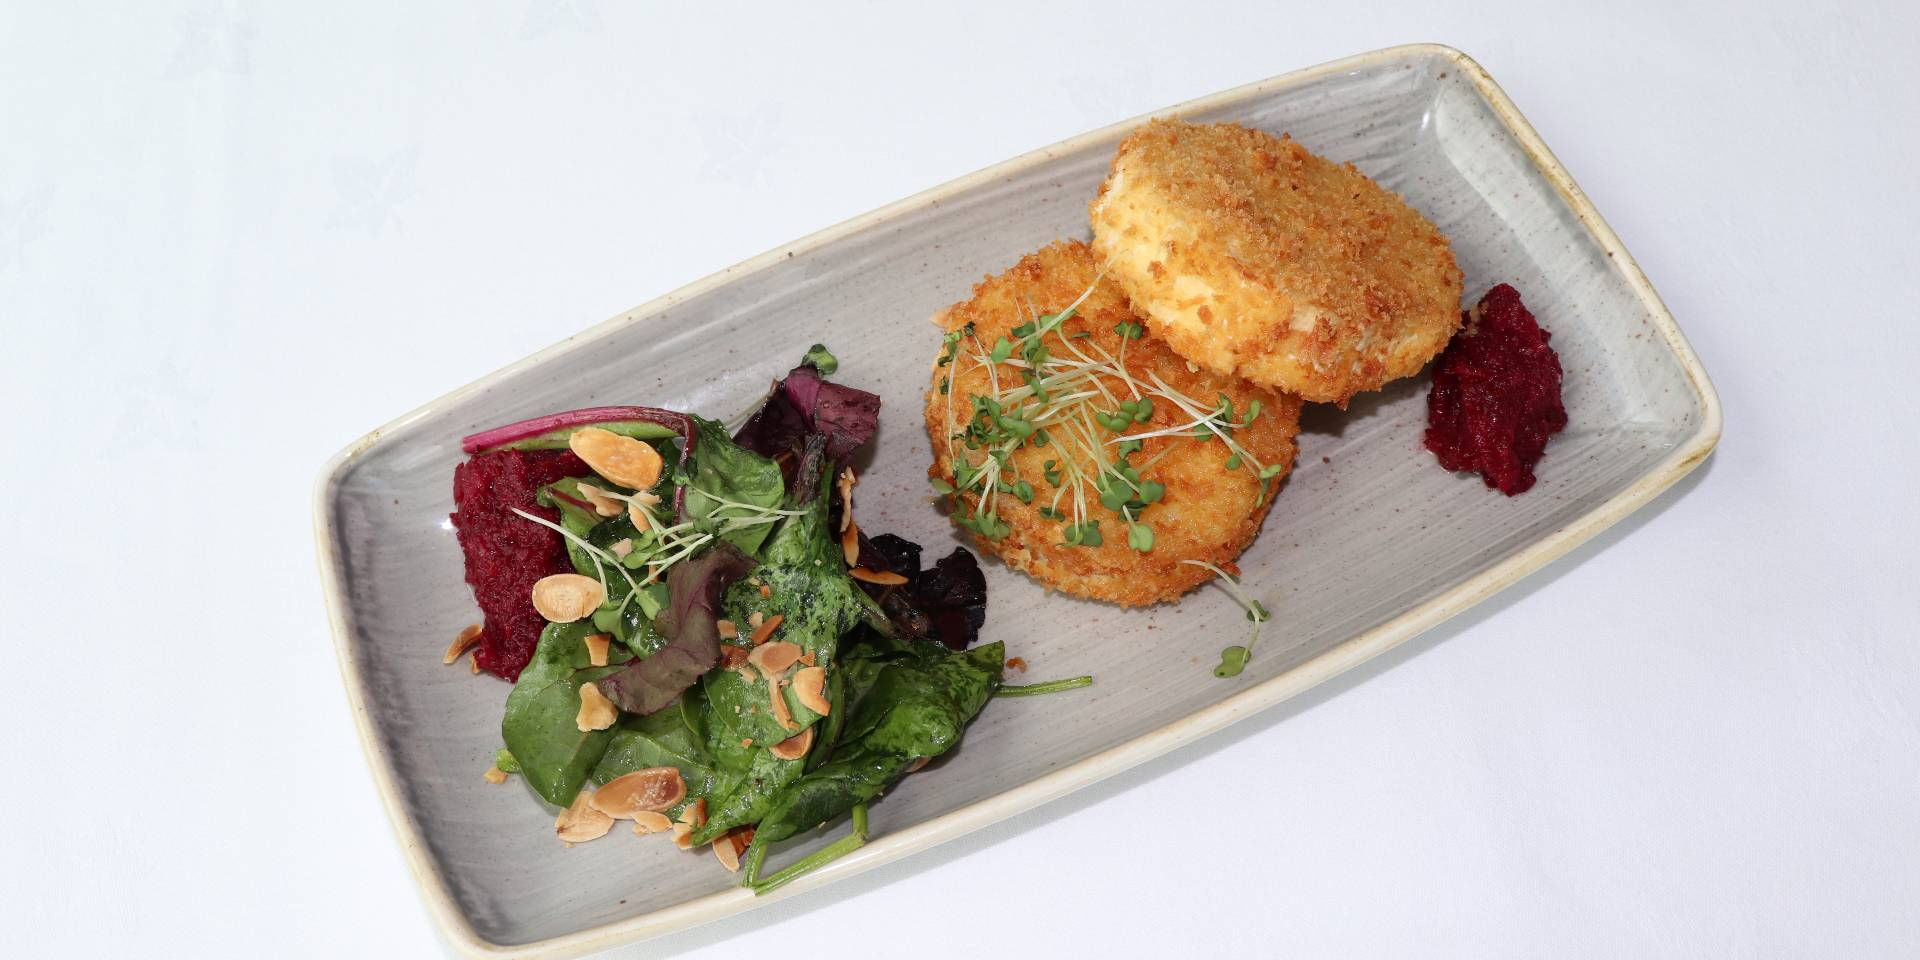 GOLDEN-CRUMBED-GOATS-CHEESE